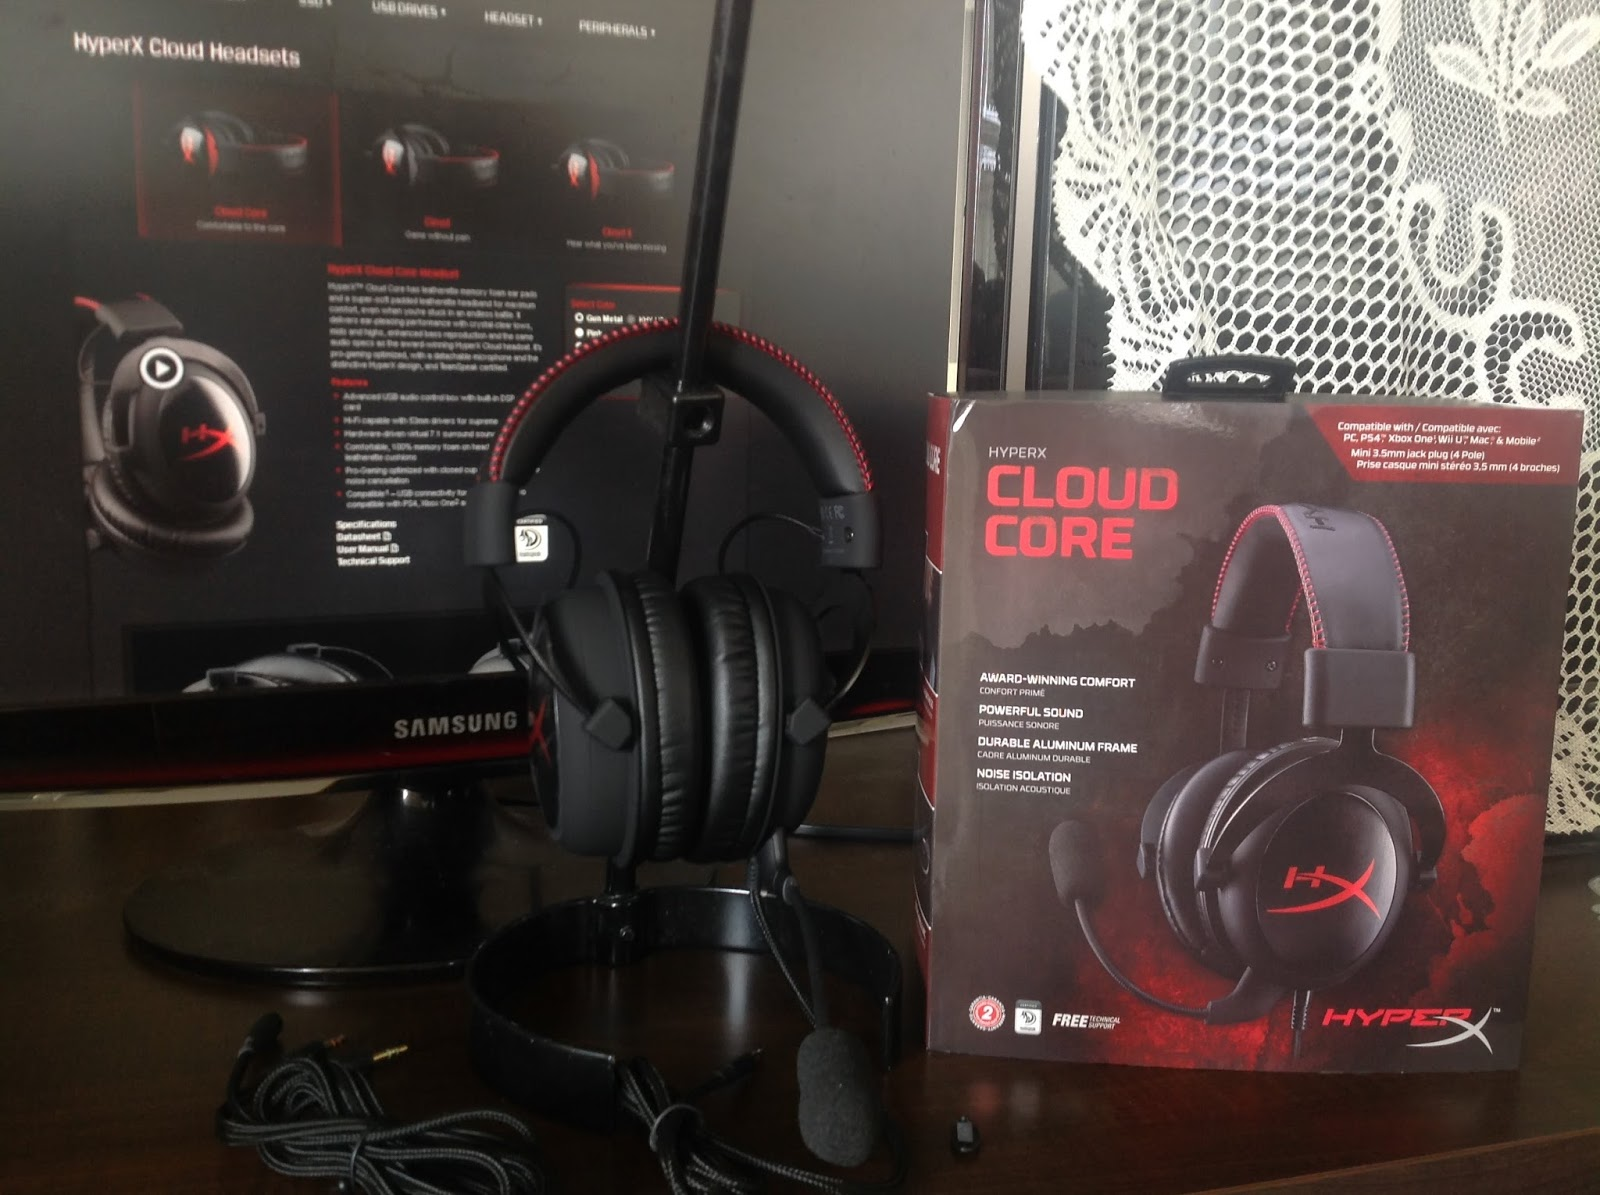 Kingston hyperx cloud ii gaming headset word cloud - Testing To The Core We Opted To Test The Kingston Hyperx Cloud